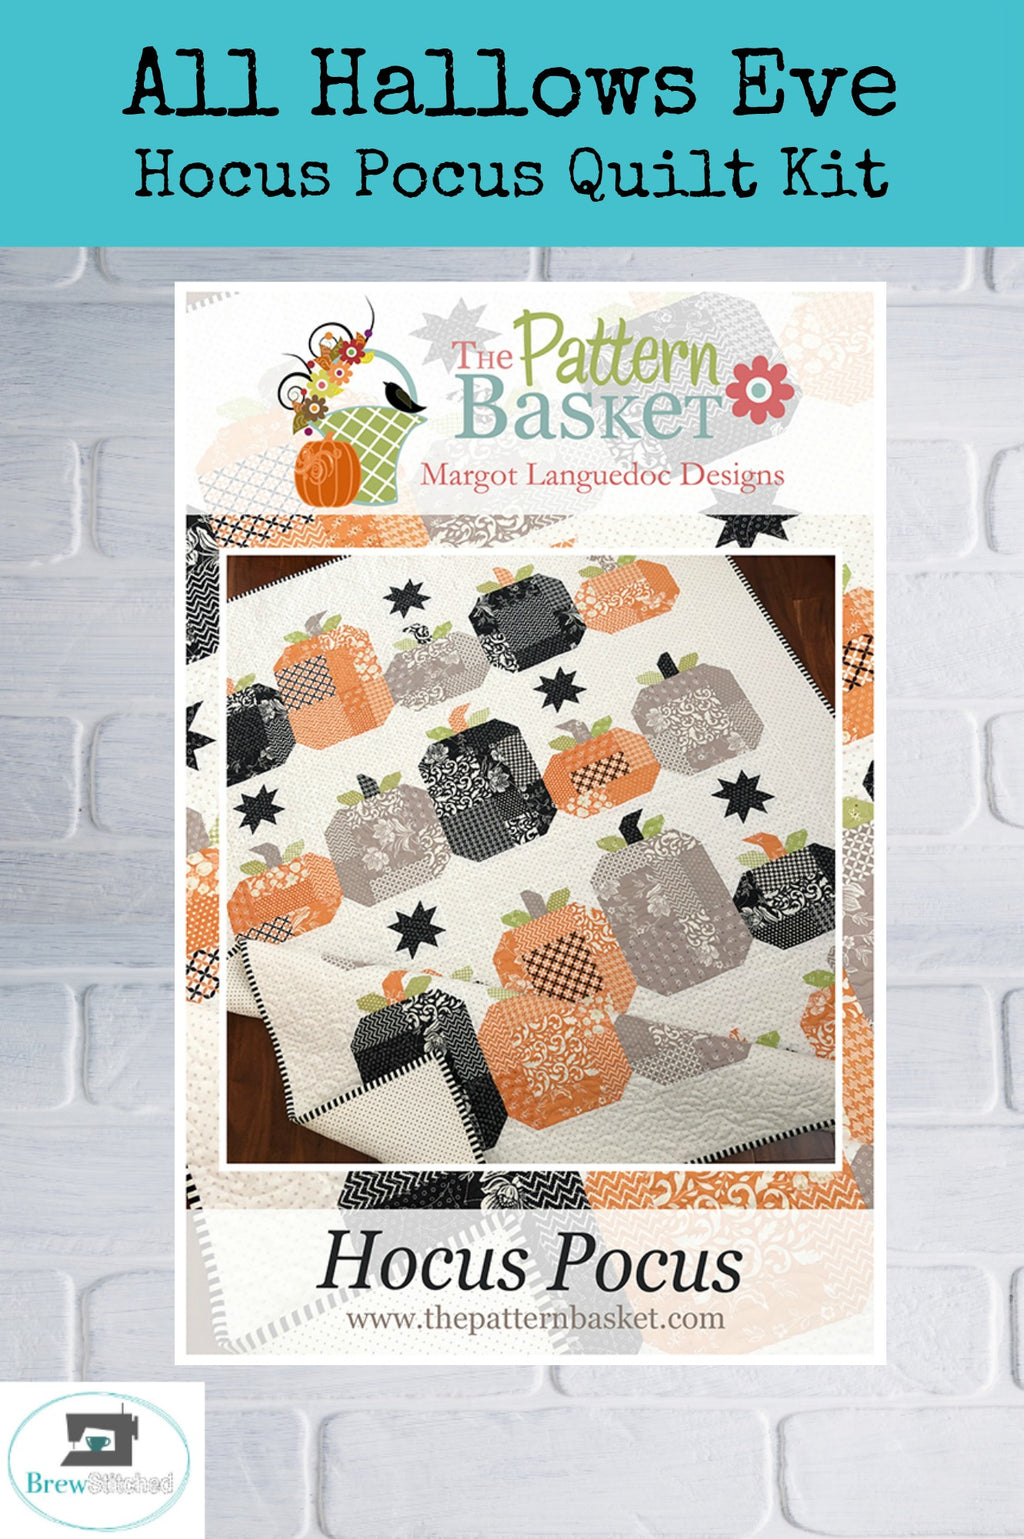 All Hallows Eve Hocus Pocus Quilt Kit - brewstitched.com